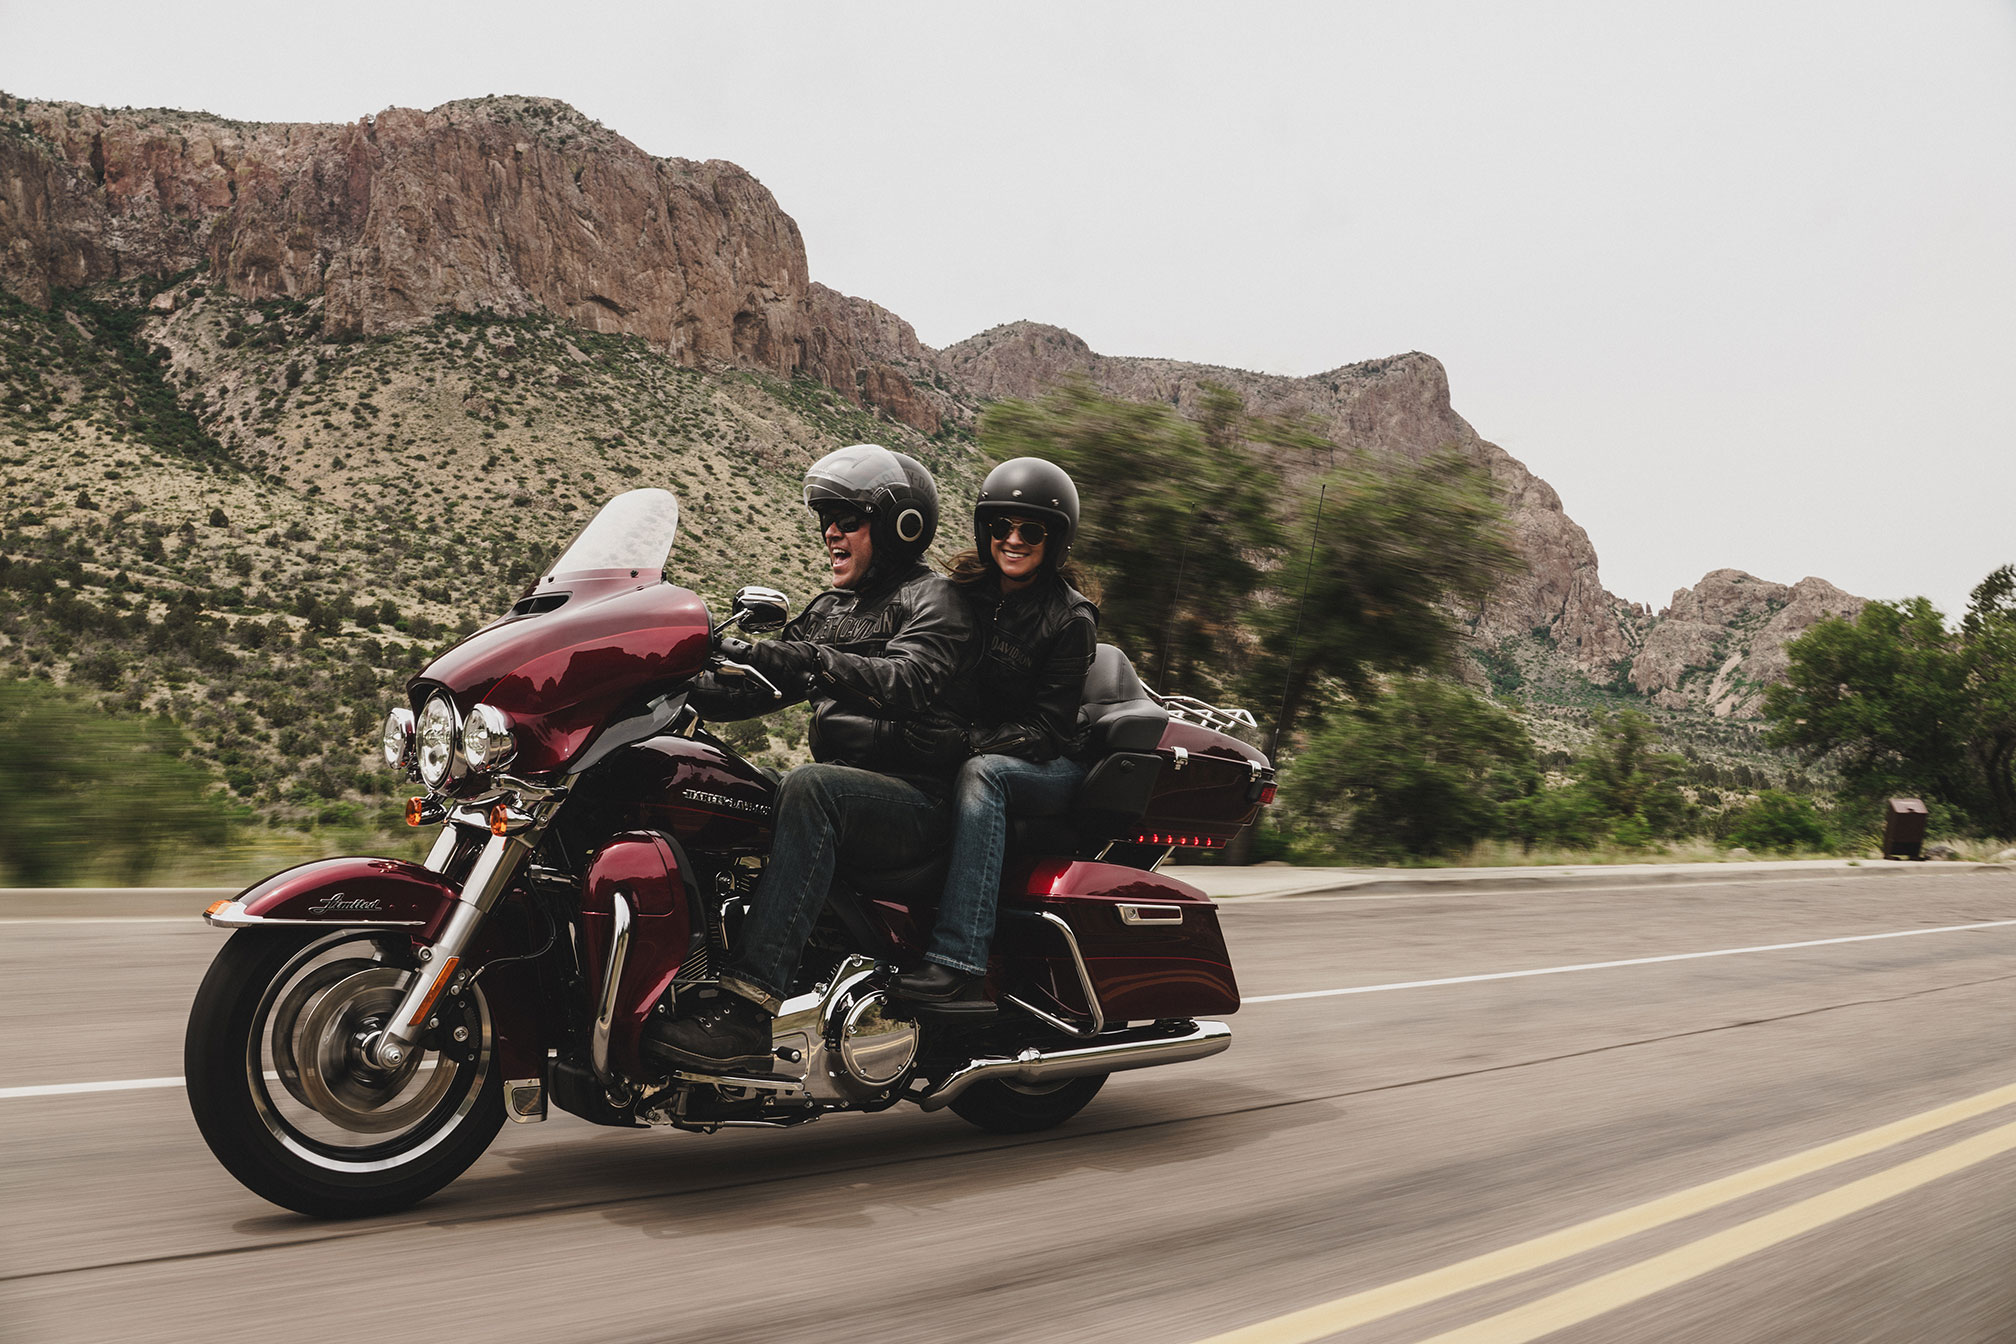 2016 Harley Davidson Touring Ultra Limited Review 2015 Tour Pack